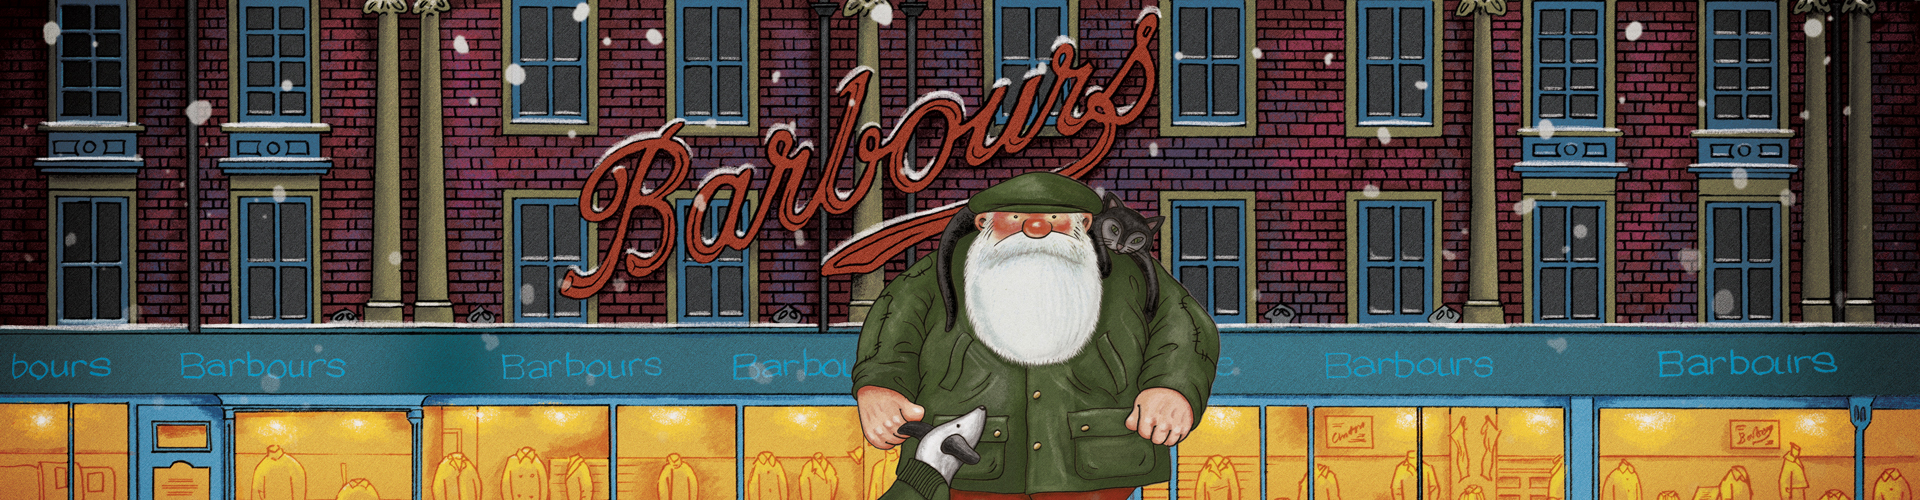 Barbour Christmas: Father Christmas in 'Thanks Mrs C'